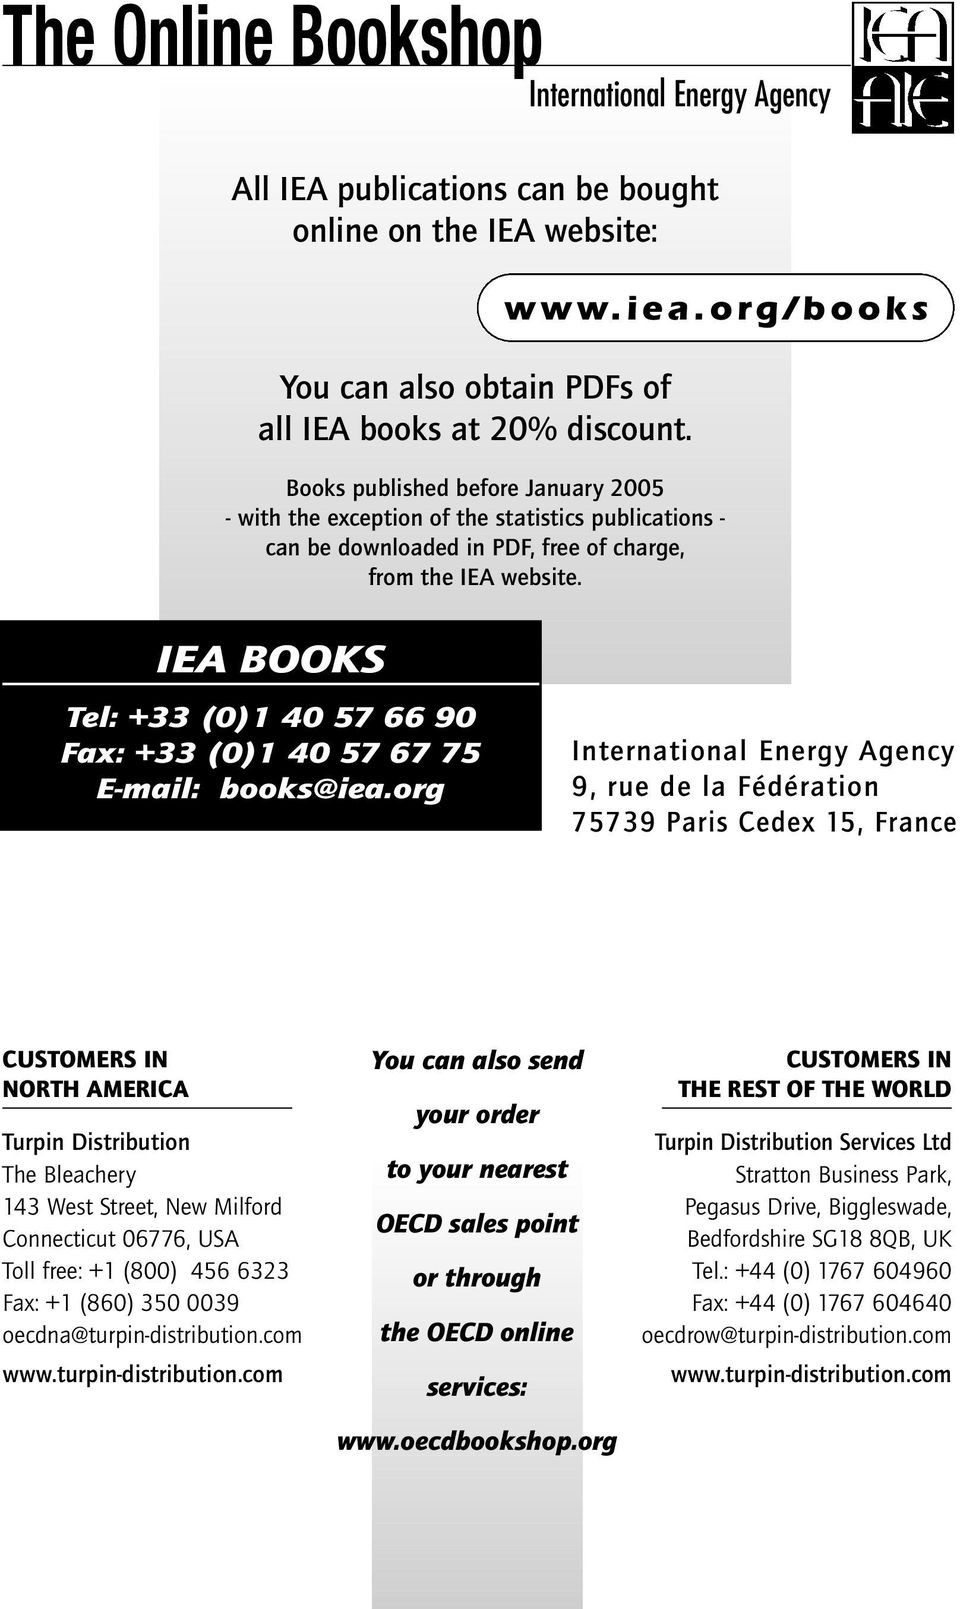 IEA BOOKS Tel: +33 (0)1 40 57 66 90 Fax: +33 (0)1 40 57 67 75 E-mail: books@iea.